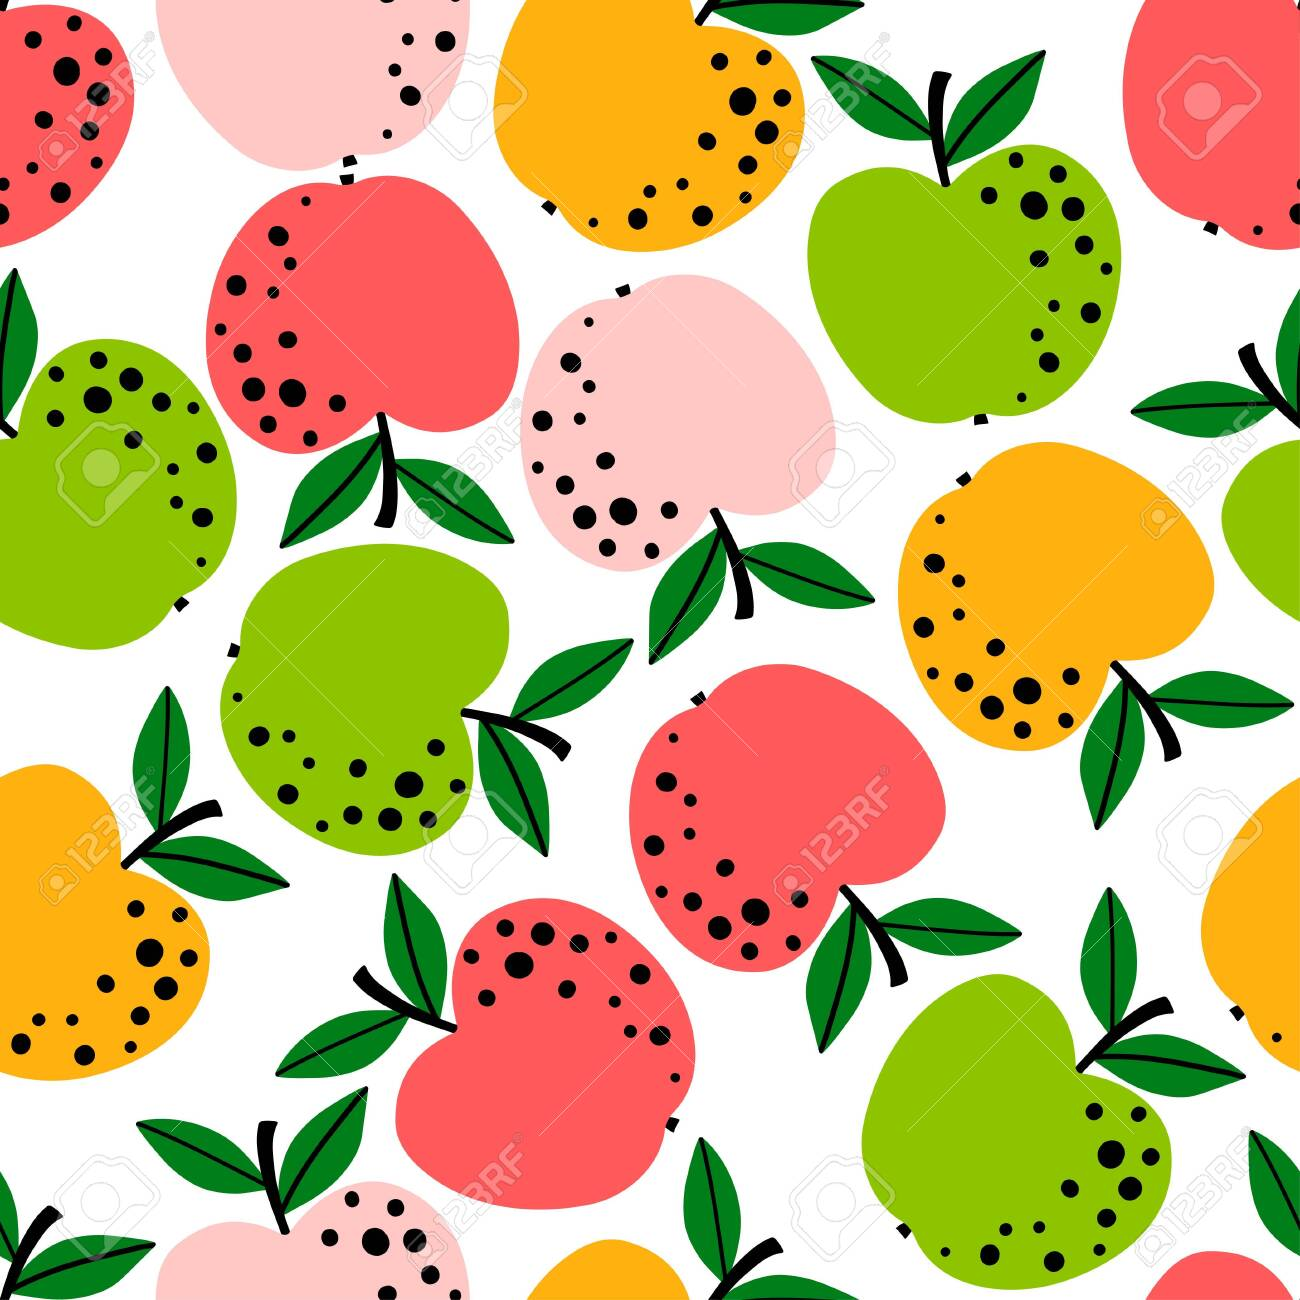 Apple Pattern Fruit Seamless Background Or Wallpaper Repeated Royalty Free Cliparts Vectors And Stock Illustration Image 138970172